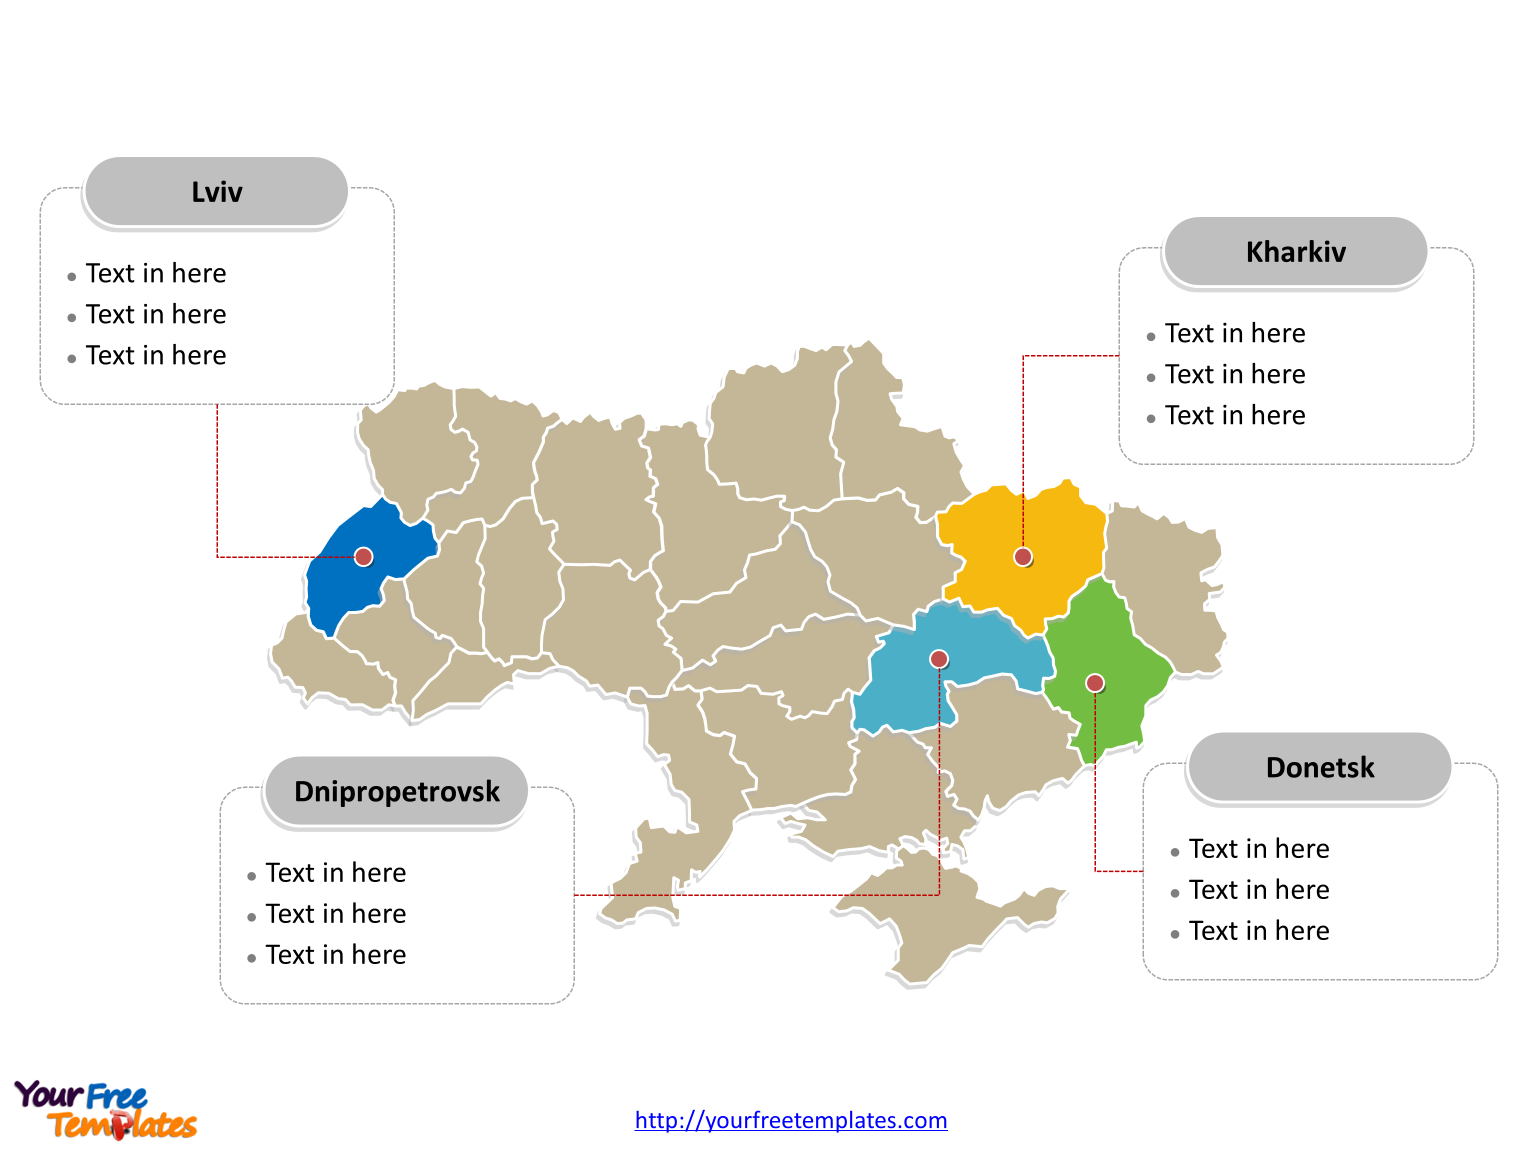 Immediately free Editable Ukraine outline and political map